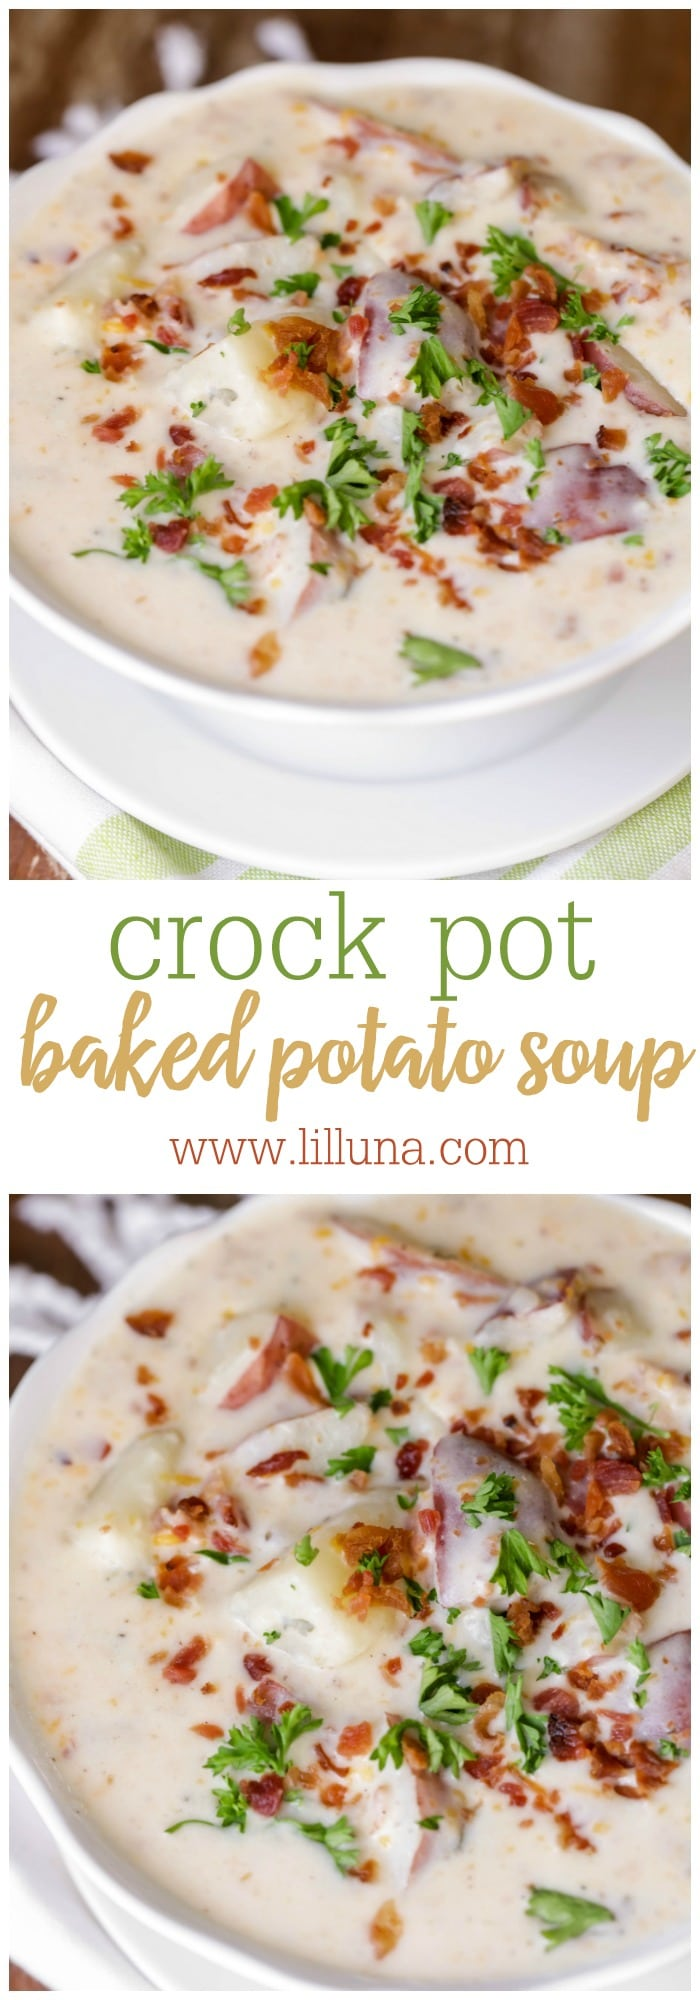 Crockpot Potato Soup Recipe